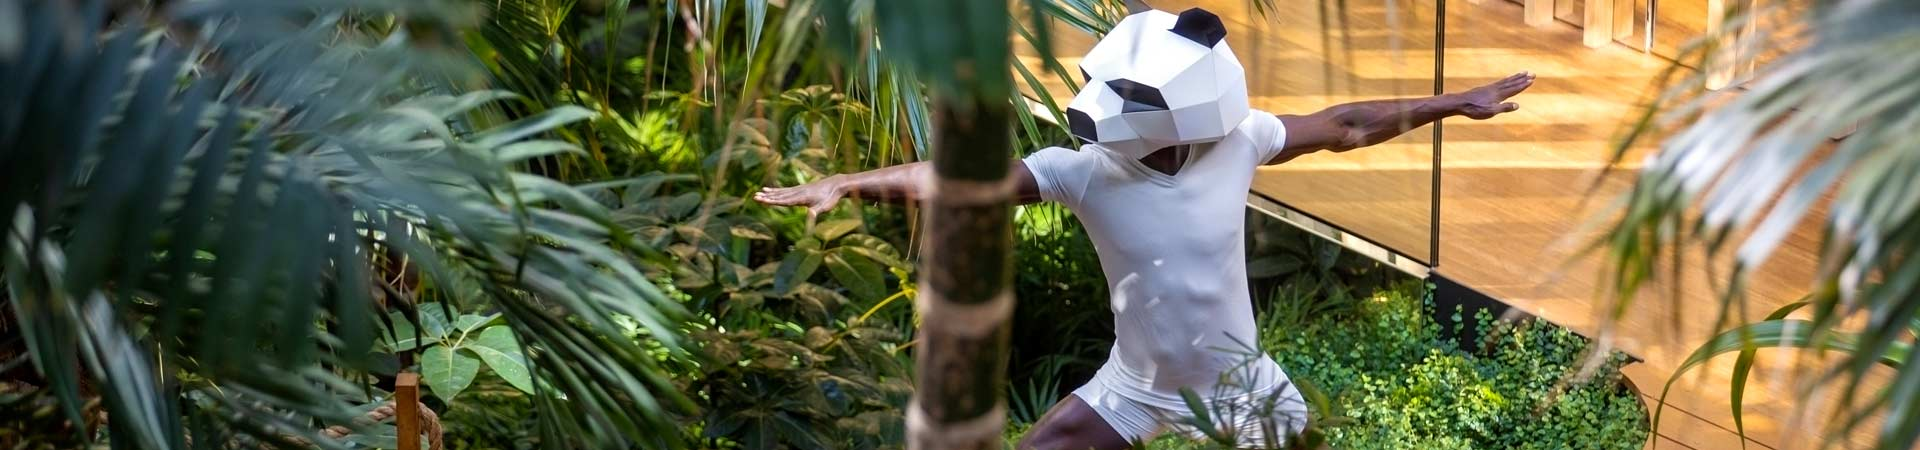 Bamboo undershirts for men